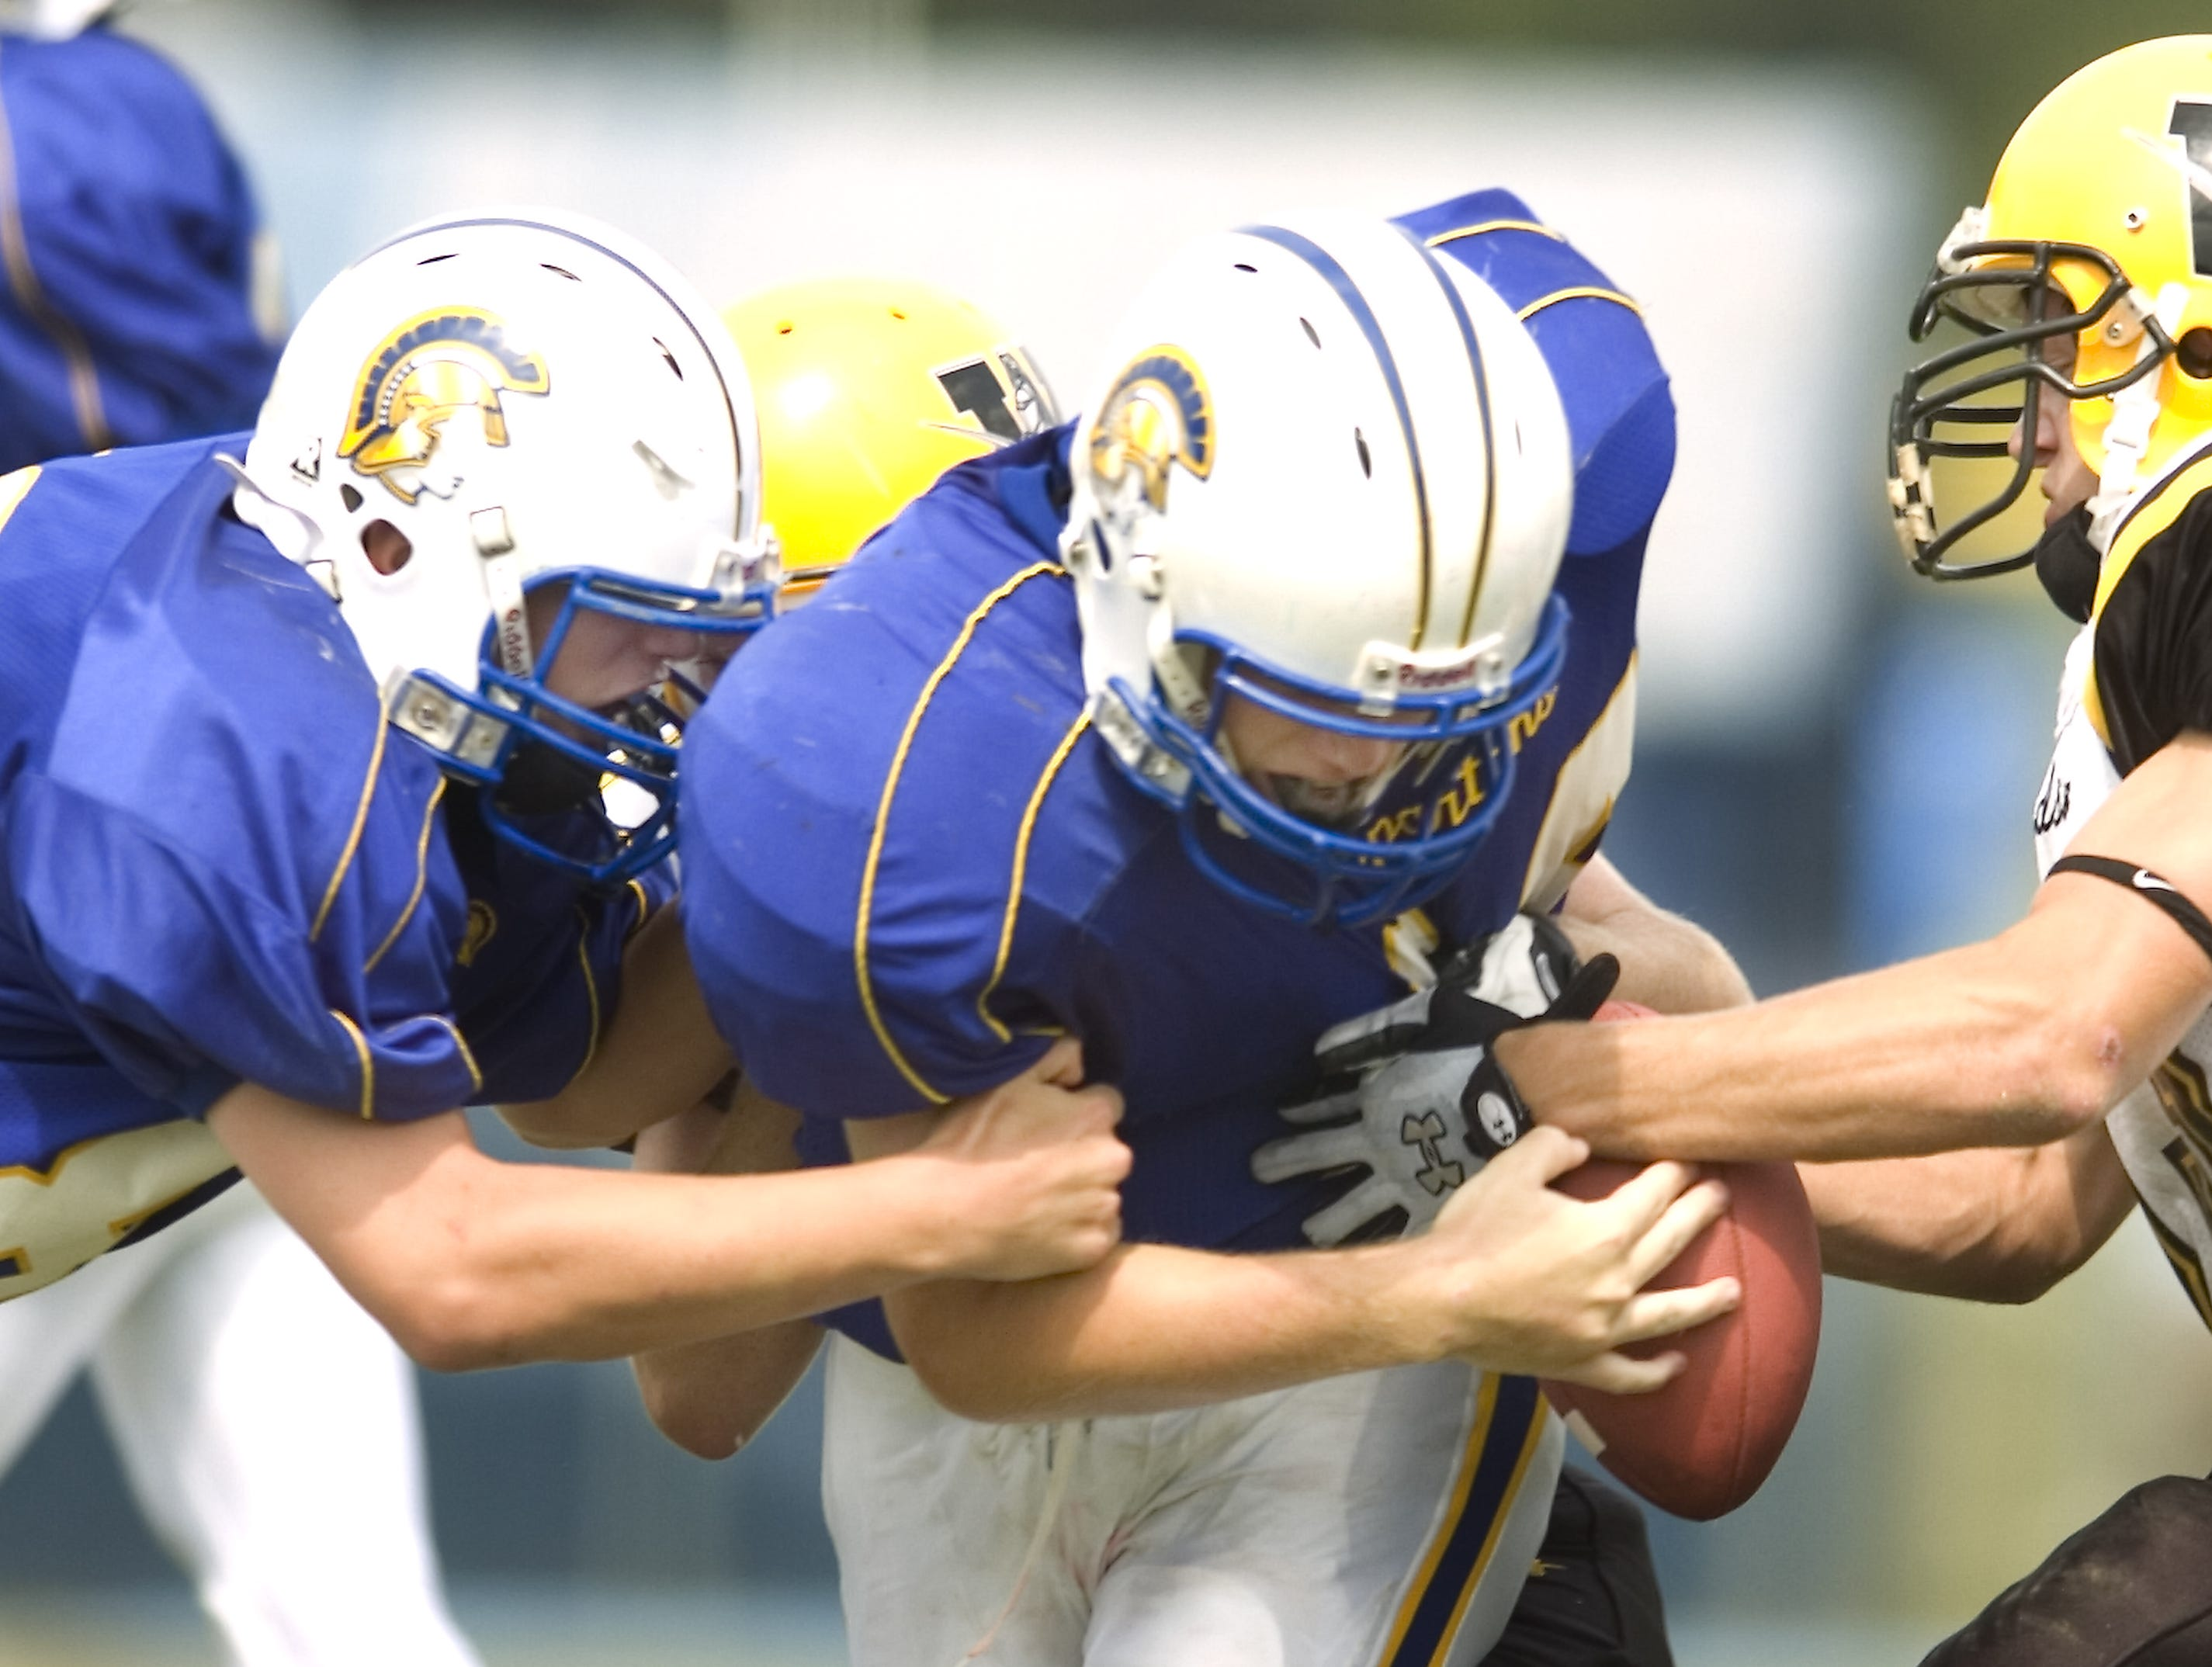 Adam Rosenbarker, left, of Maine-Endwell and his teammate Nathan Reynolds, in 2007, as Josh Quinn of Windsor strips the football away in the first quarter at Maine-Endwell High School.